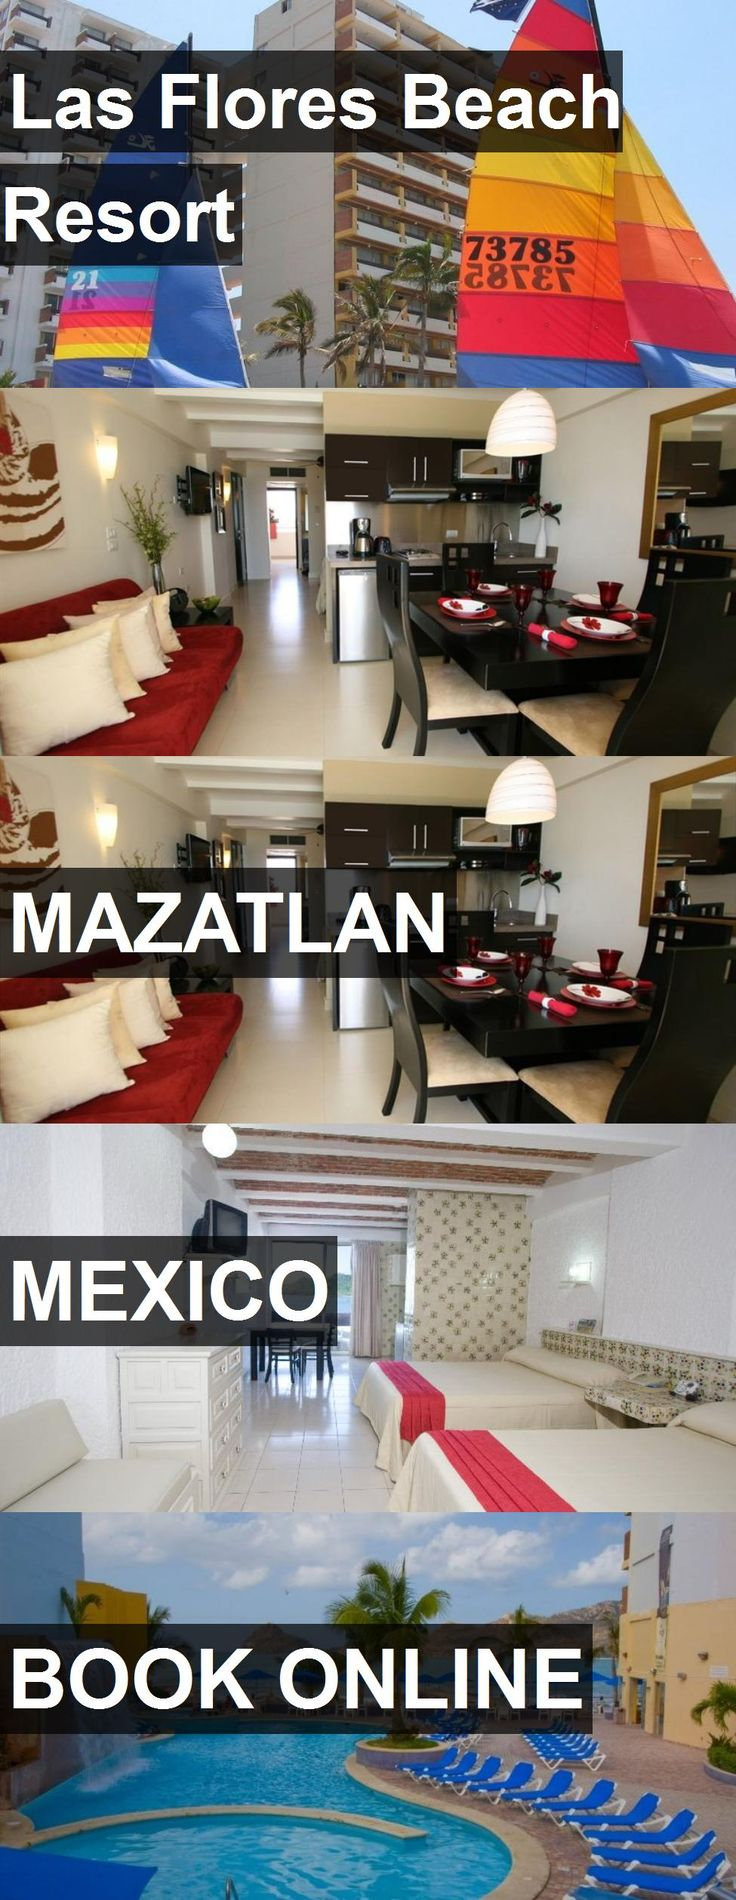 Hotel Las Flores Beach Resort in Mazatlan, Mexico. For more information, photos, reviews and best prices please follow the link. #Mexico #Mazatlan #travel #vacation #hotel